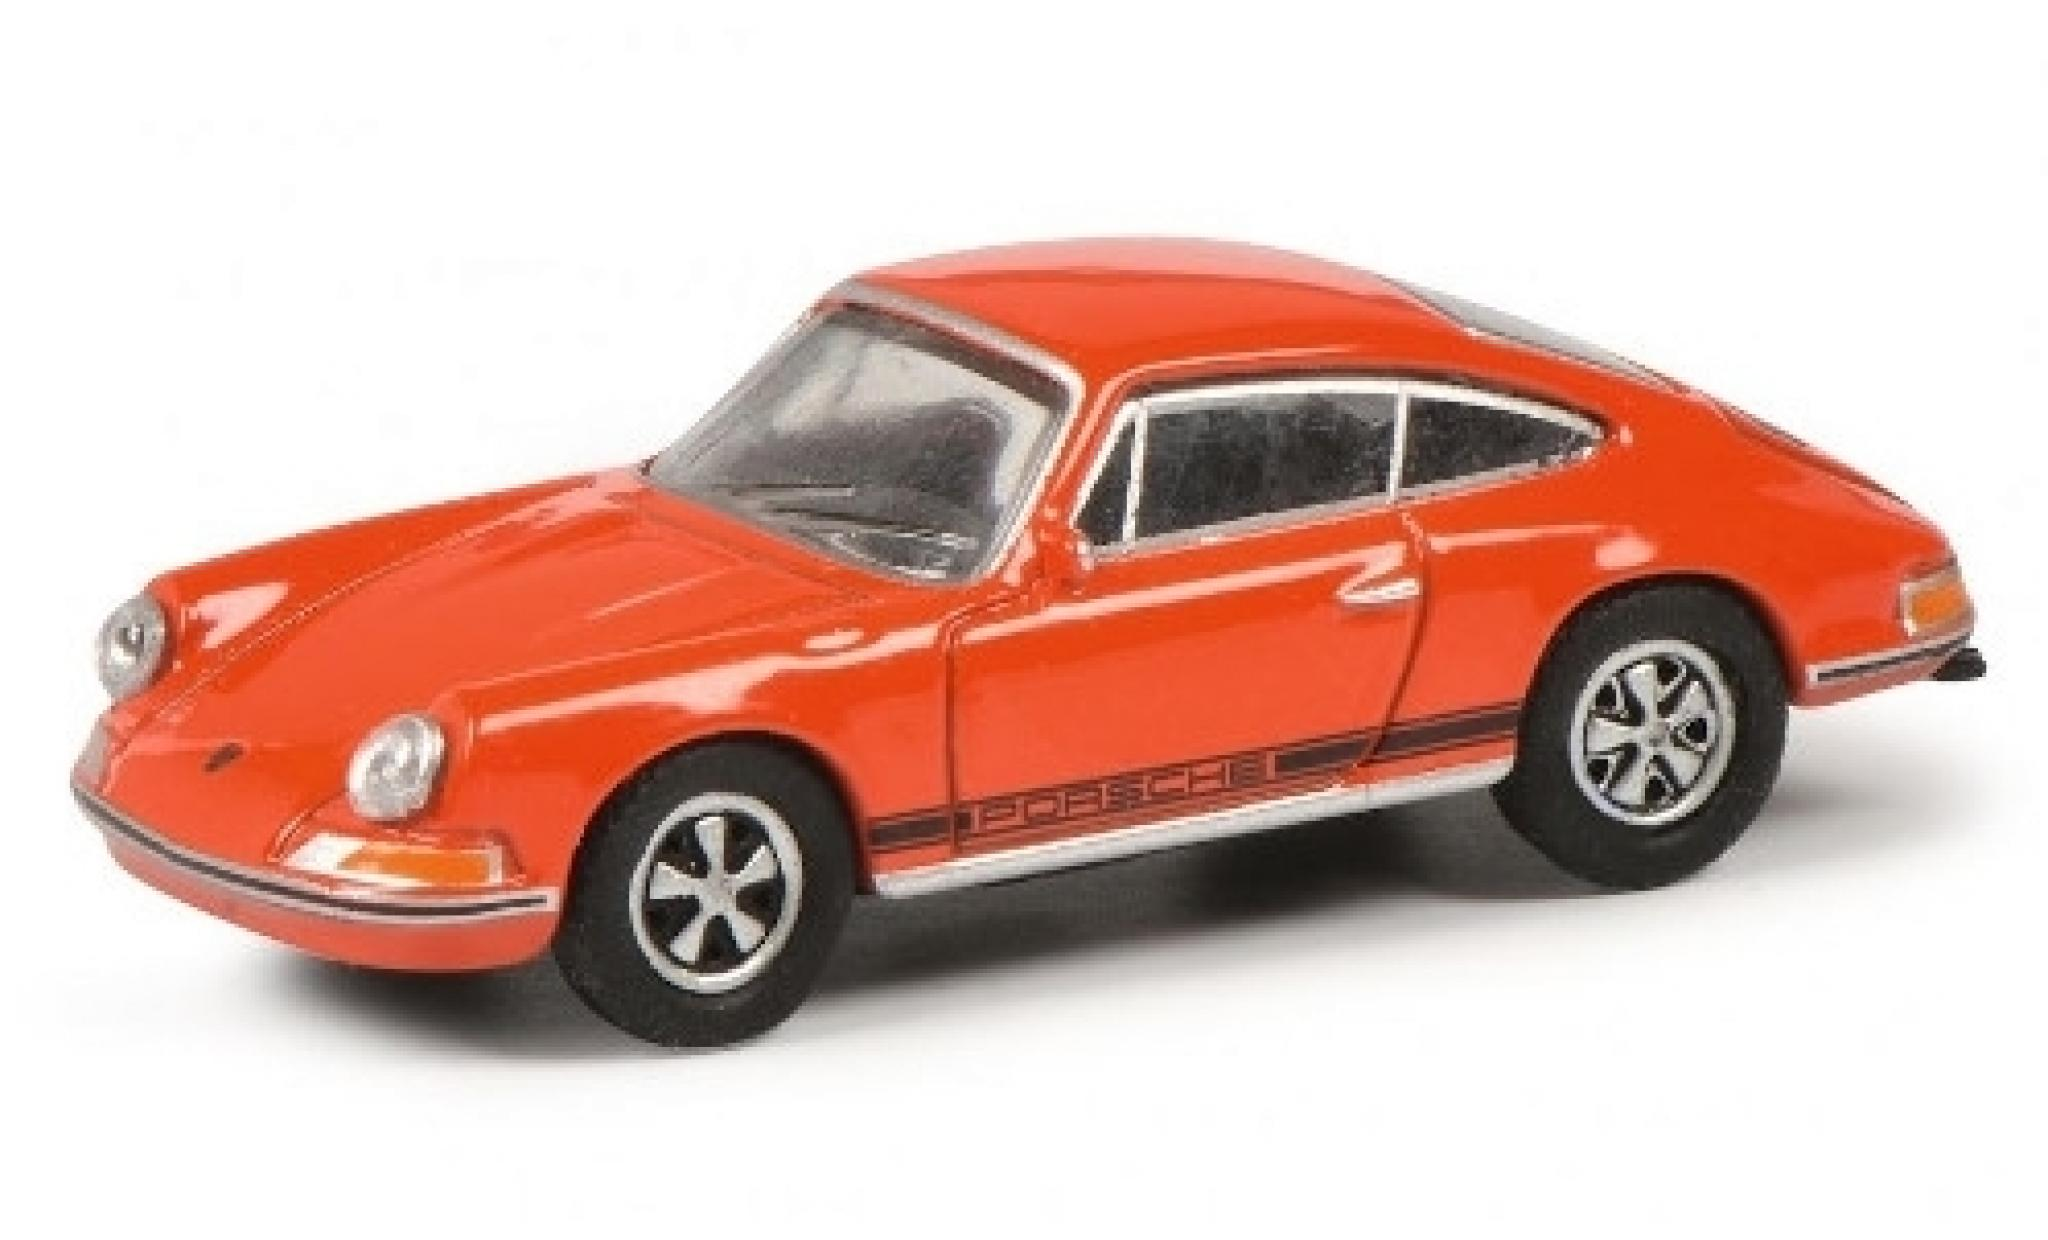 Porsche 911 1/87 Schuco S orange/noire